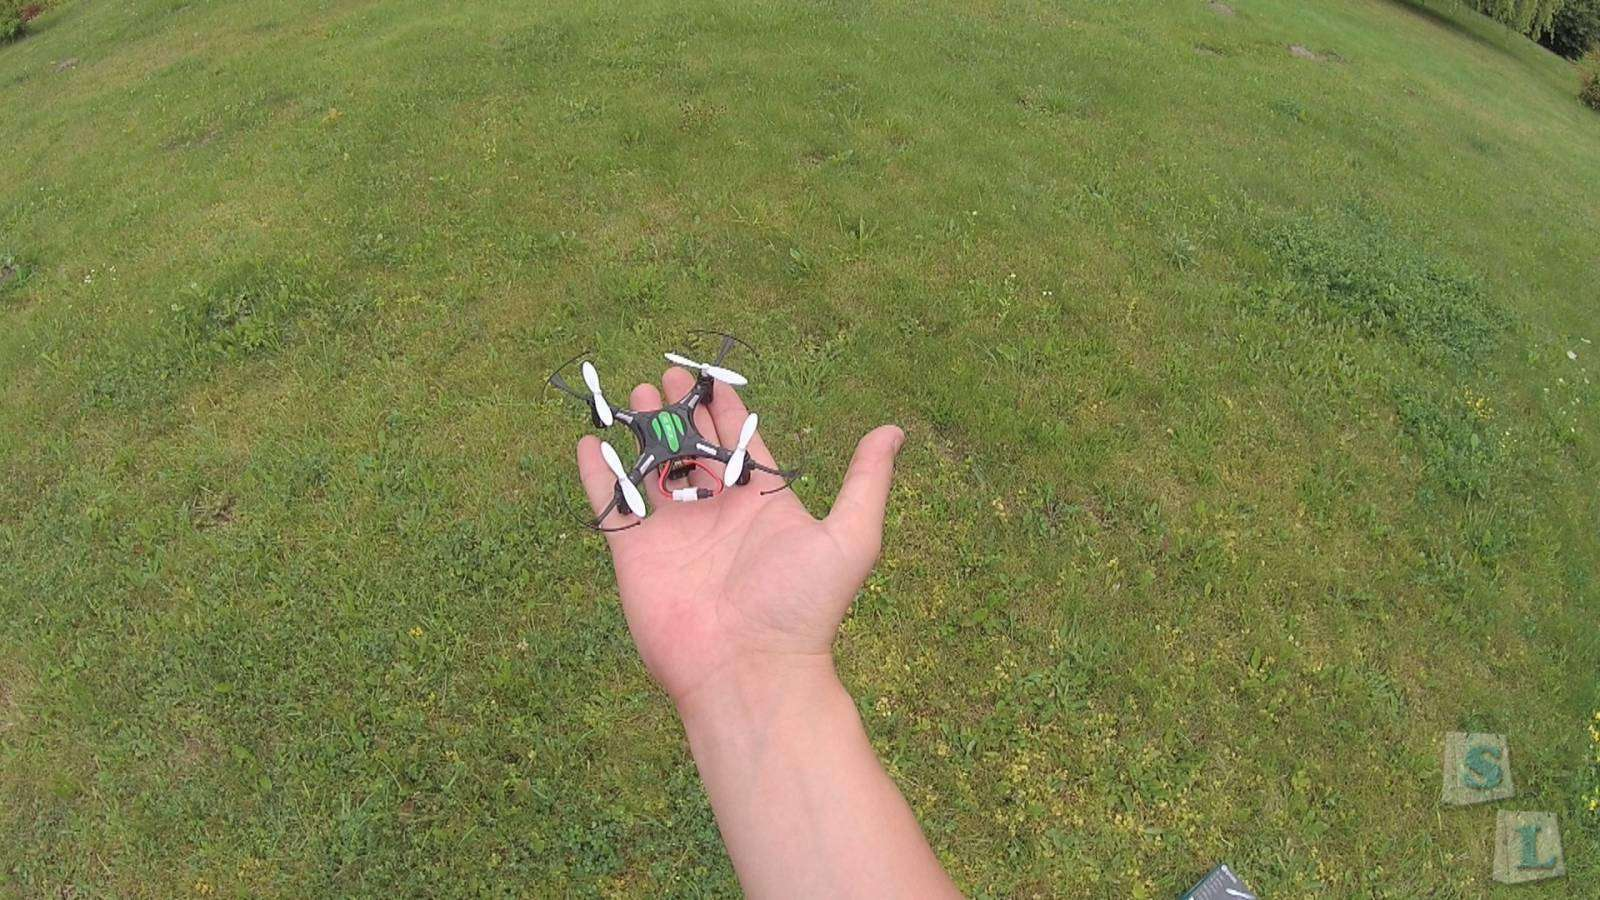 Banggood: Eachine H8 mini 2.4GHz, 4Ch, 6 Axis Gyro, RC Quadcopter with Headless Mode (RTF) + Испытание водой